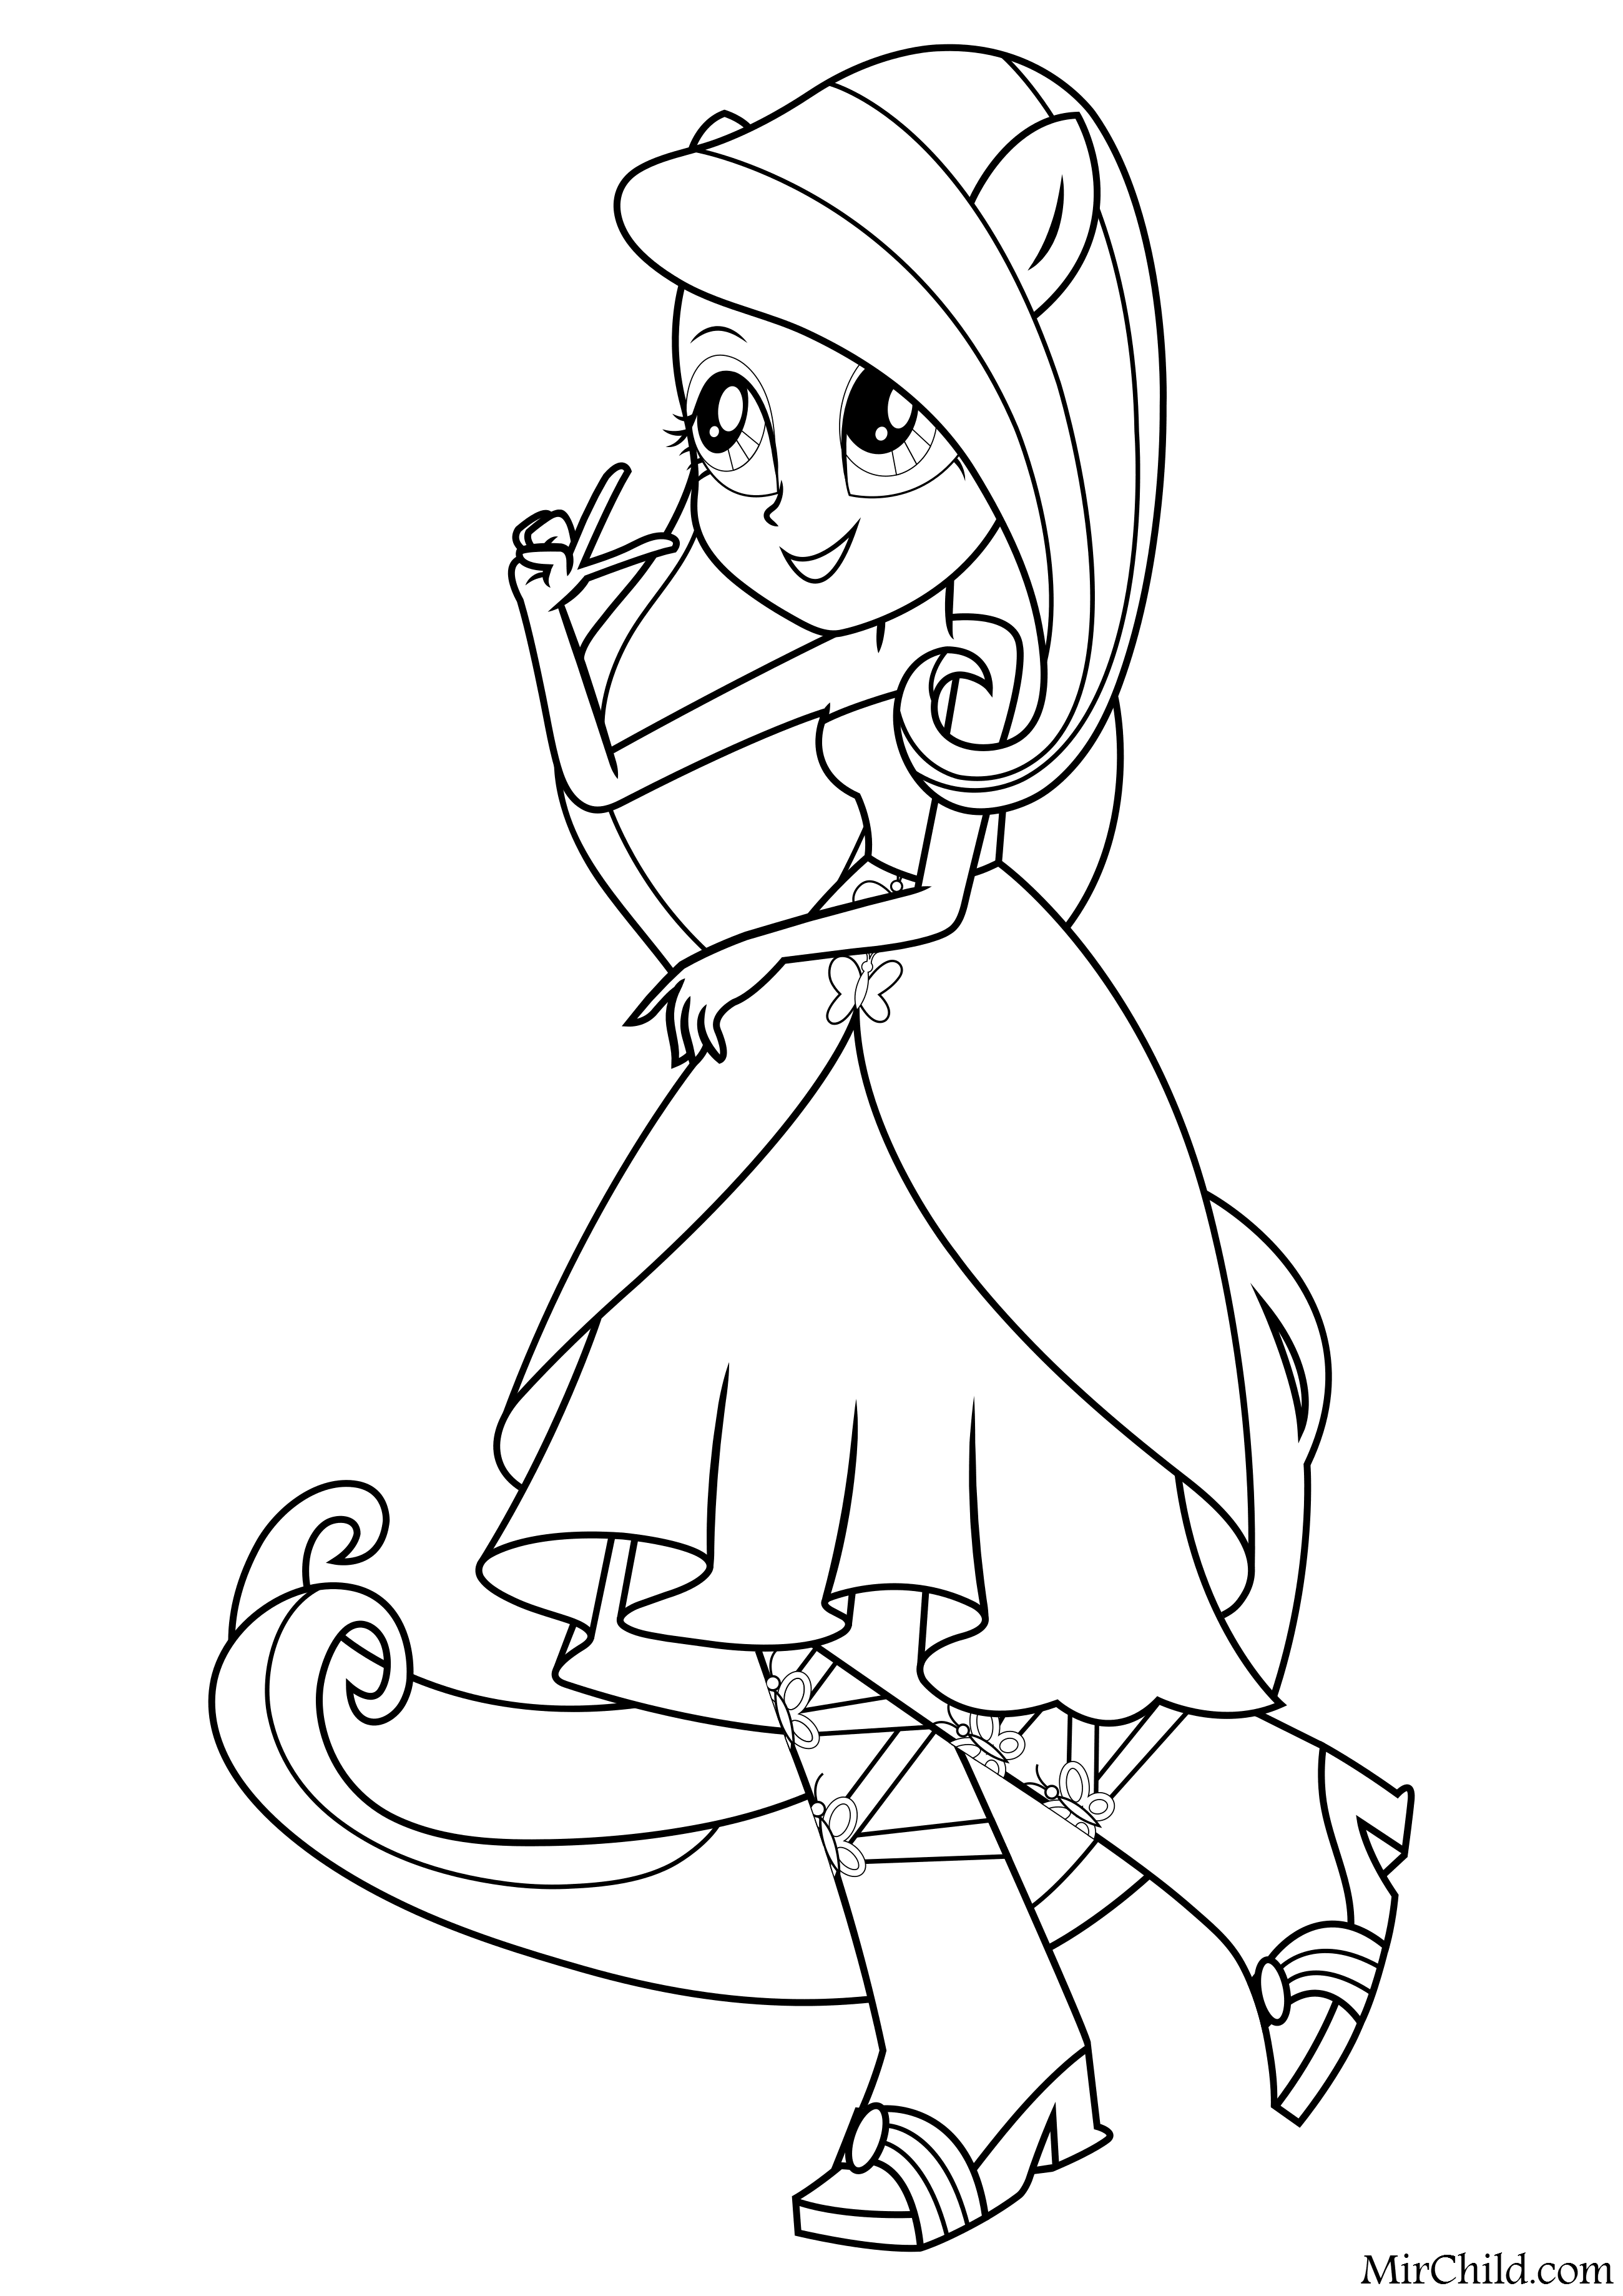 Pin By Nora Demeter On Disney Colors Cute Coloring Pages My Little Pony Coloring Disney Colors